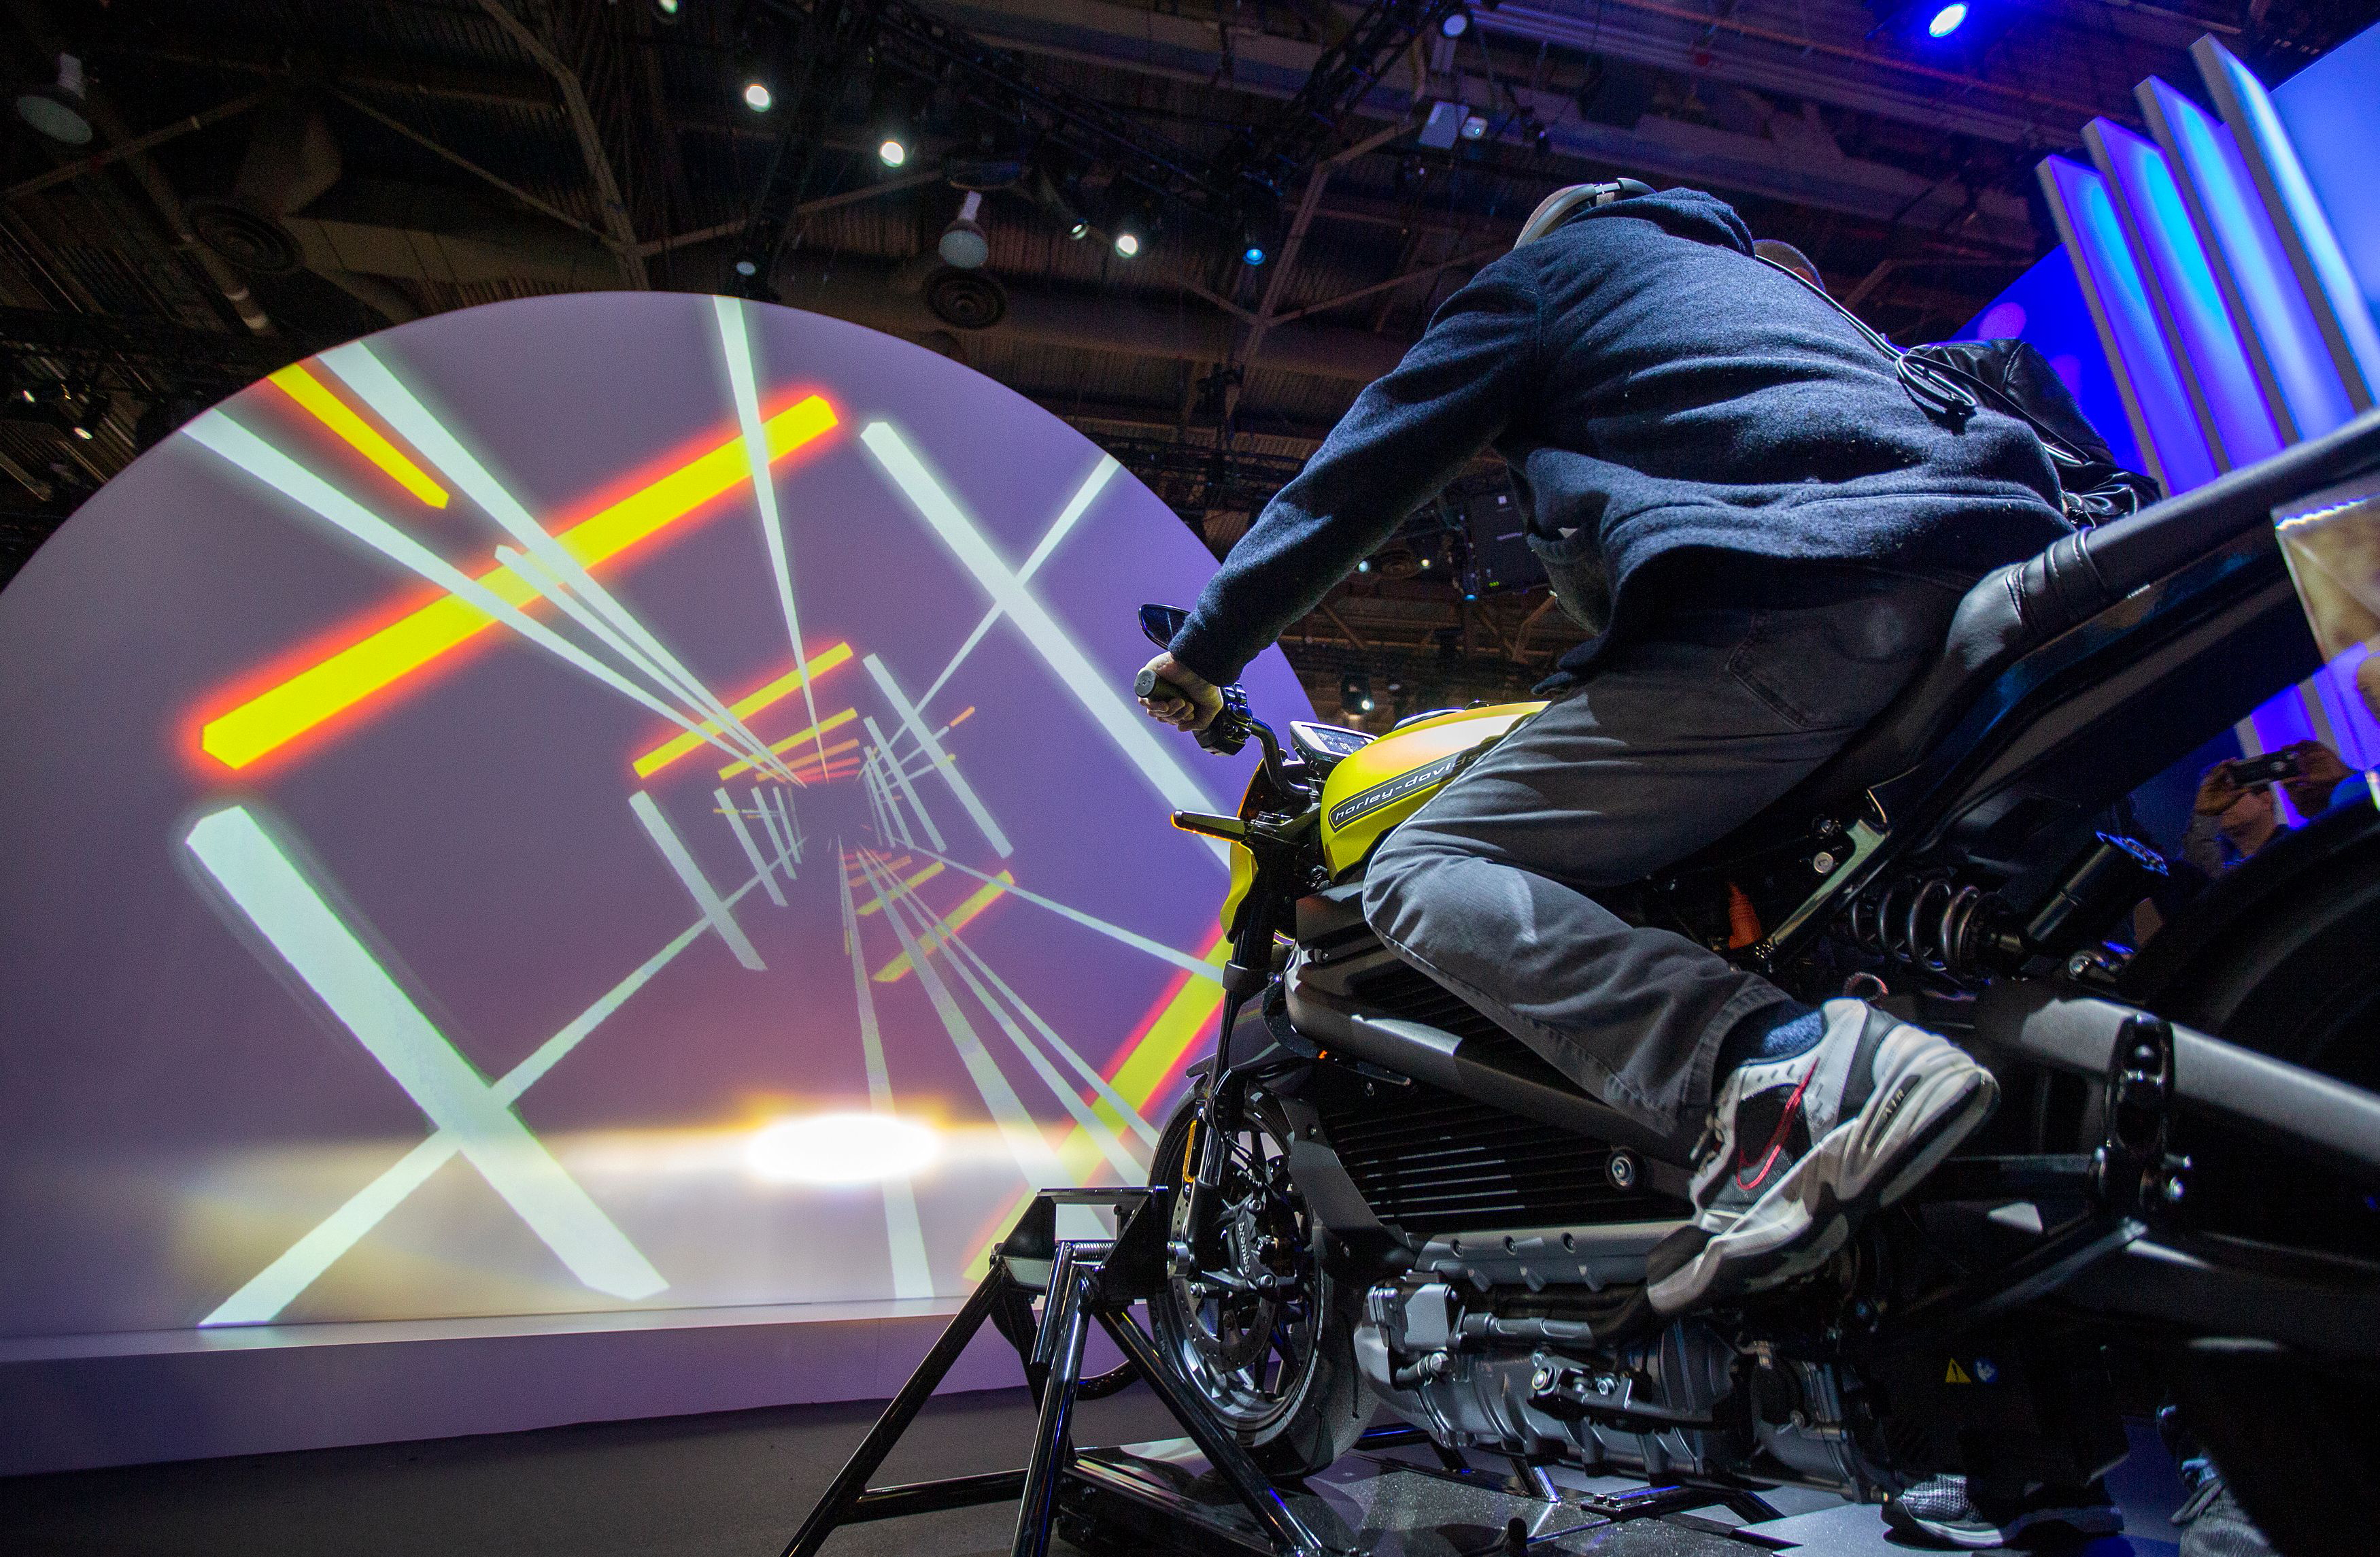 CES 2019: Hands-on with amazing products